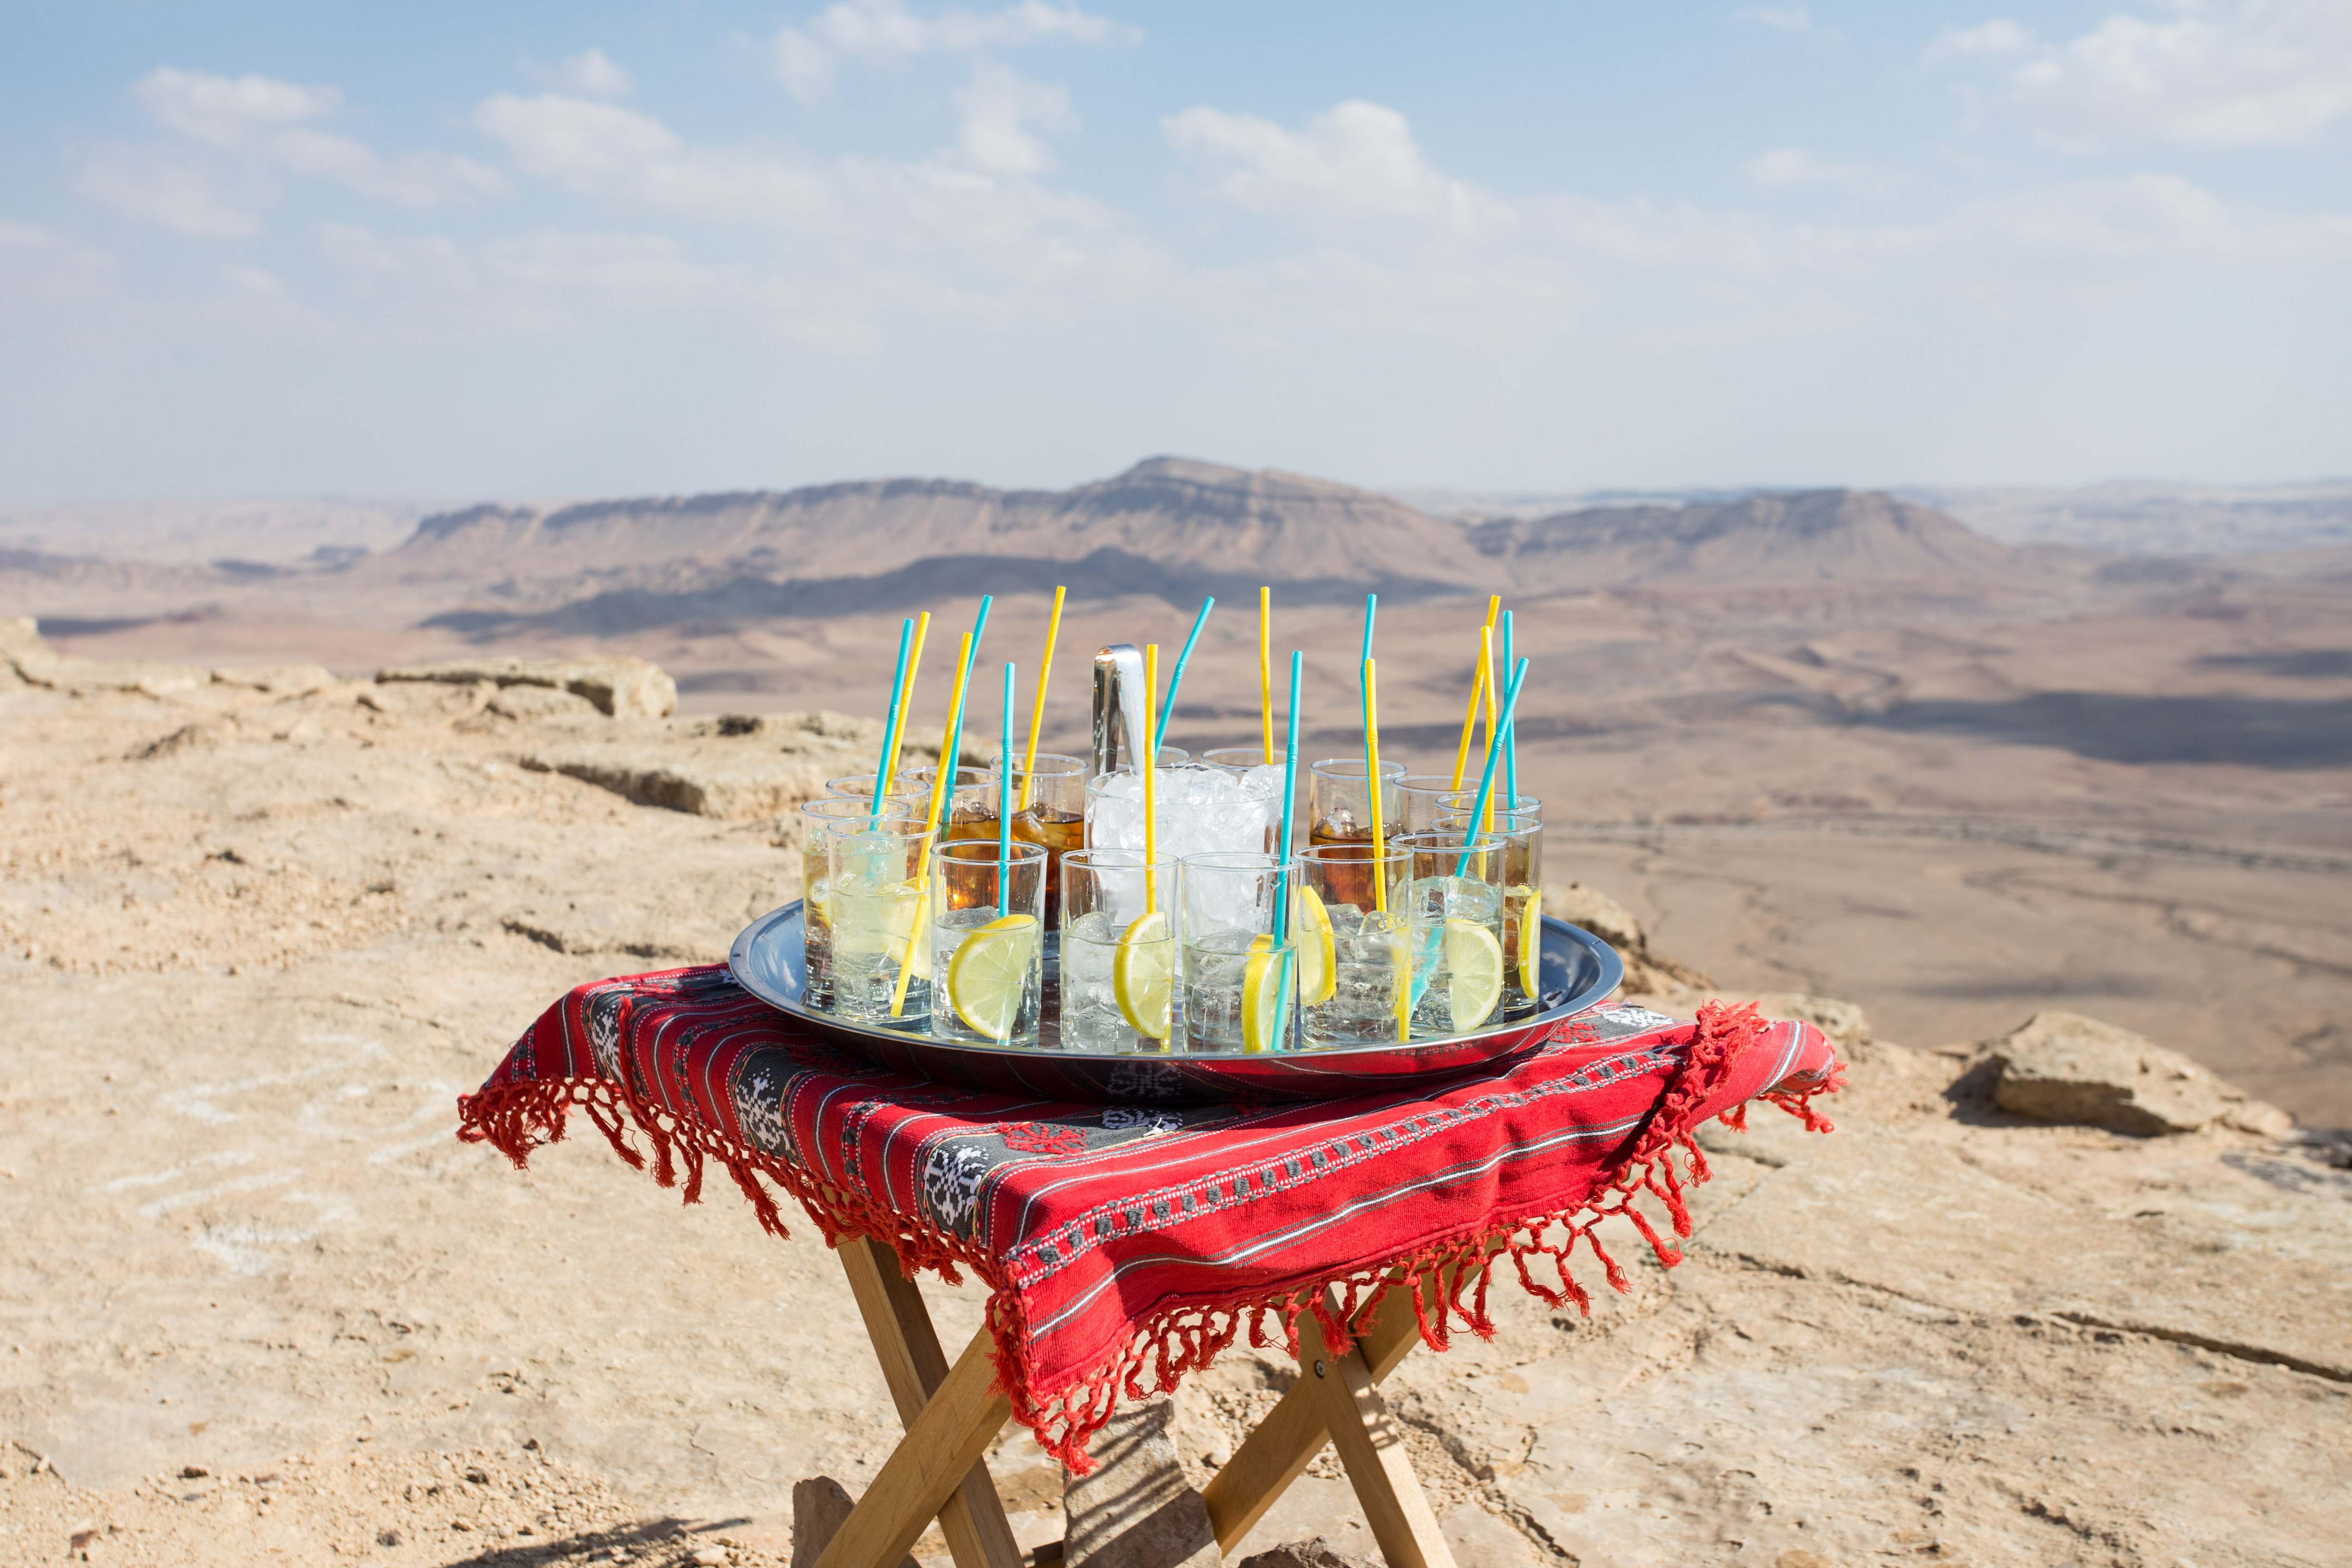 VIP events in the Israeli desert